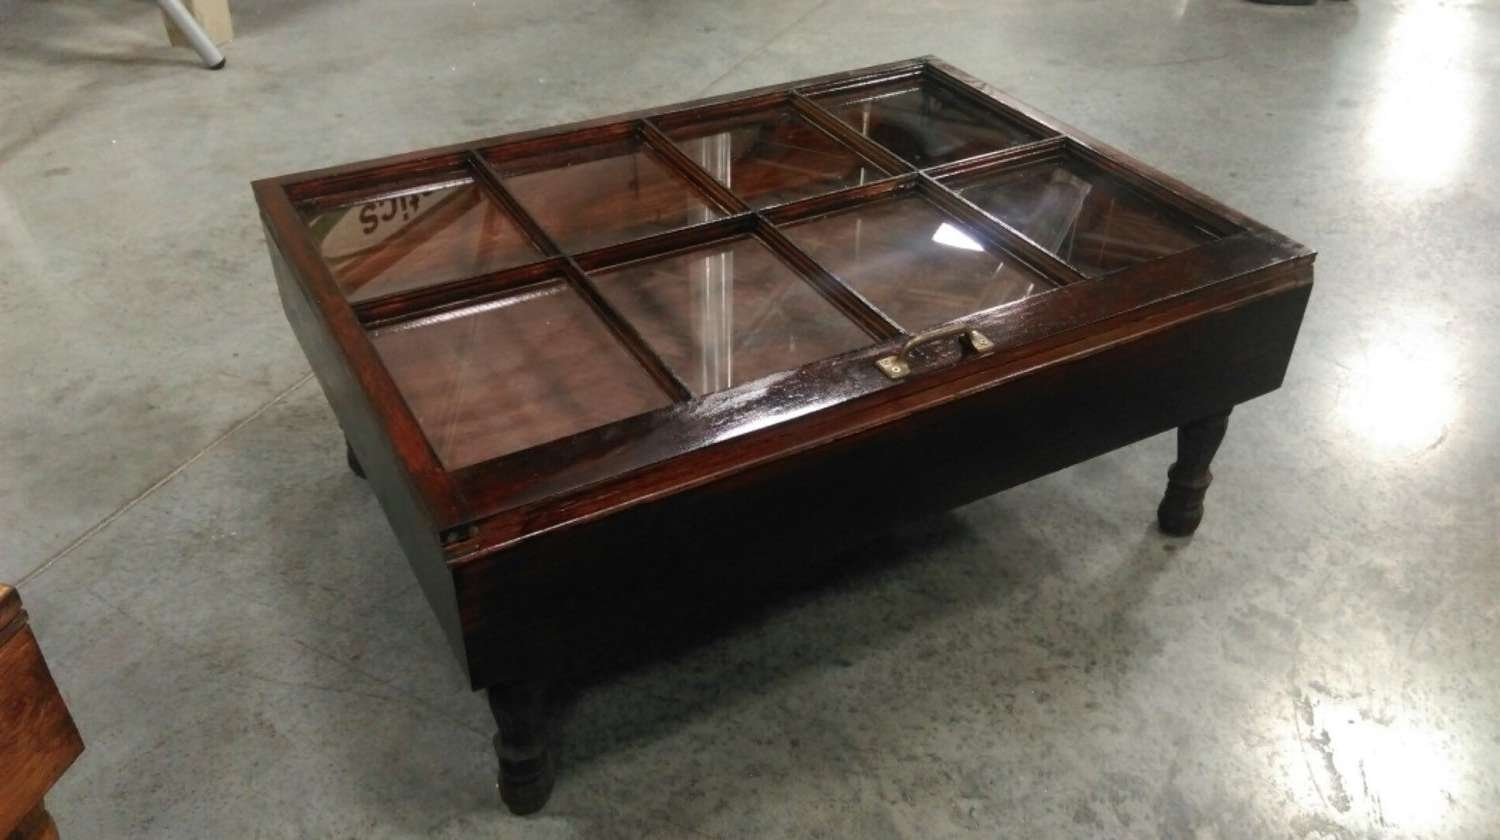 2018 Glass Top Storage Coffee Tables In Wood Shadow Box Coffee Table Mahogany Shadow Box Table (View 2 of 20)